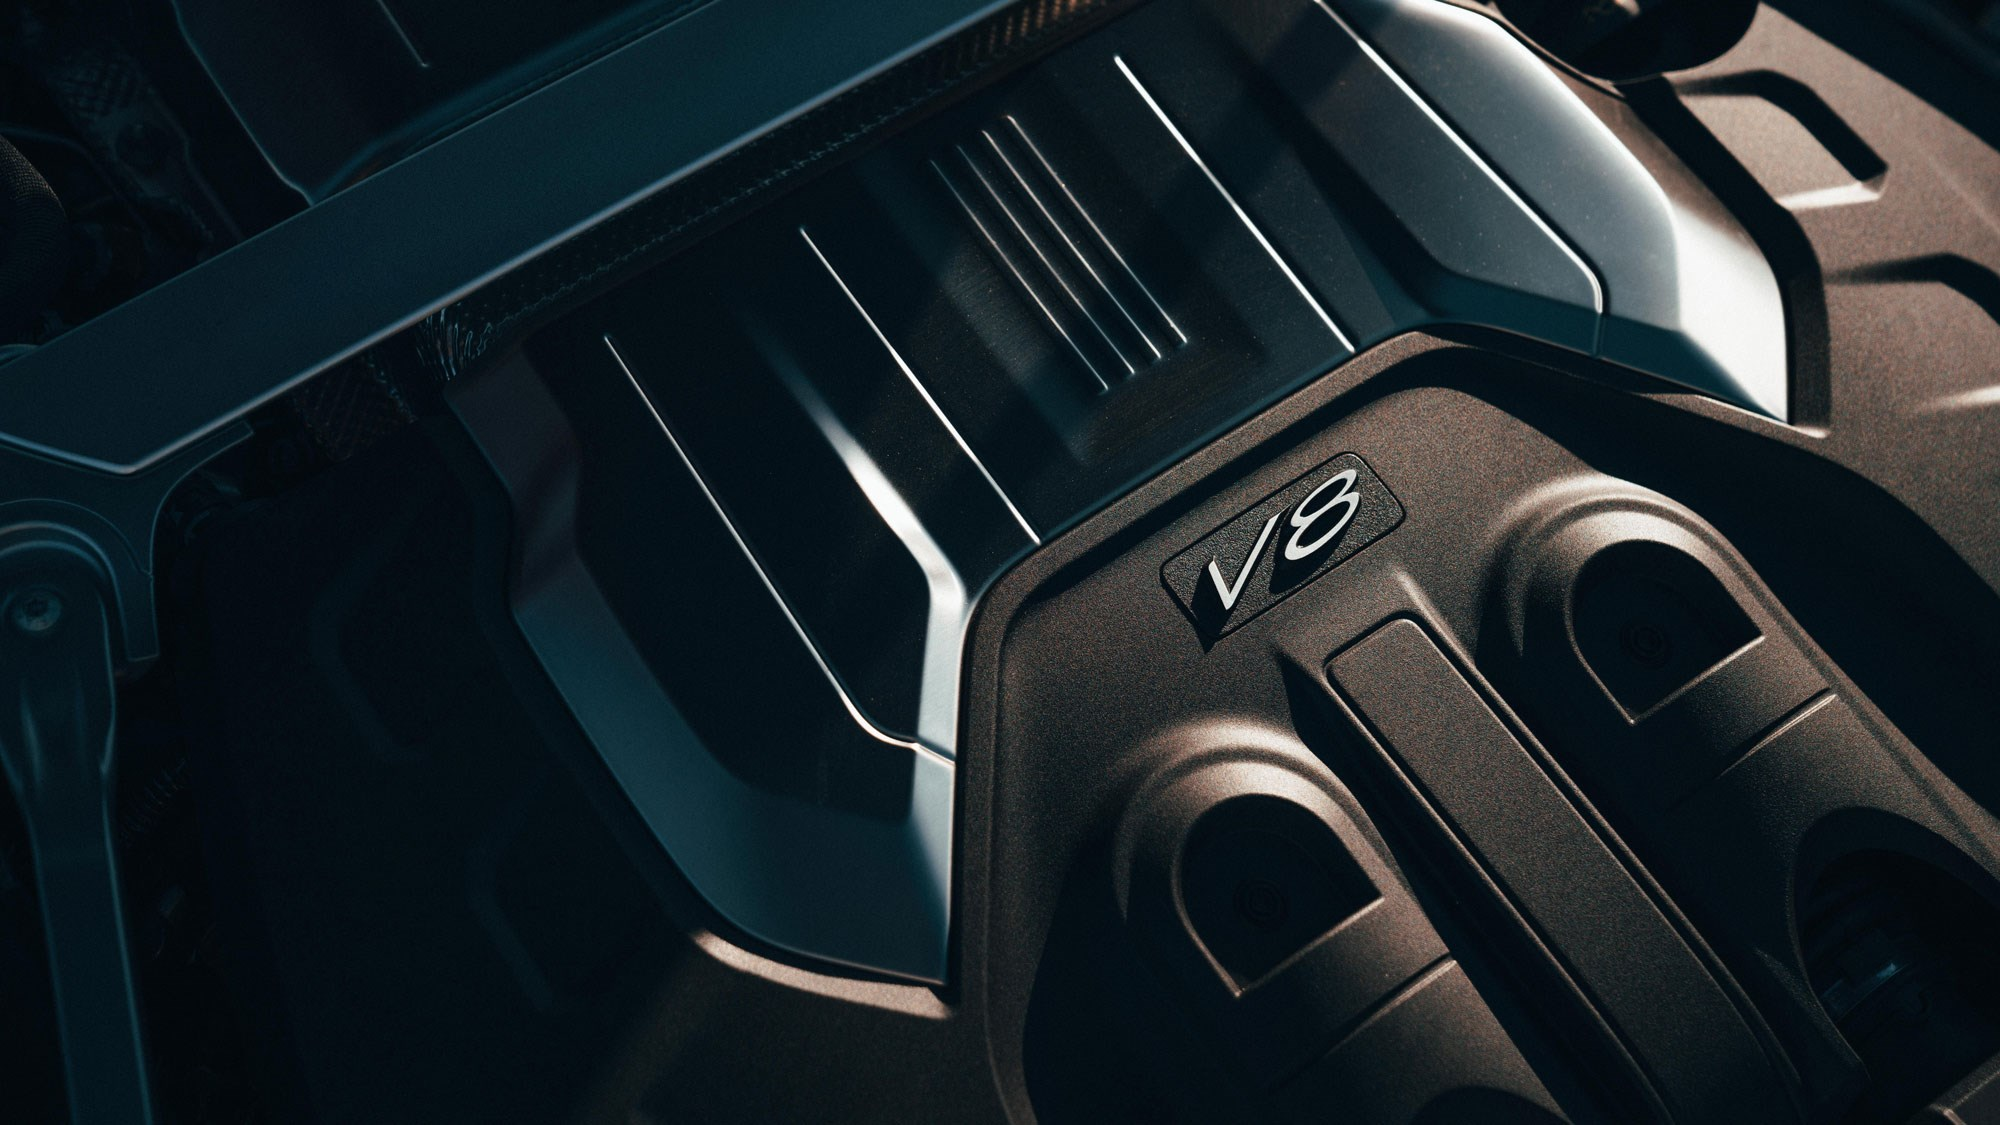 New Continental GT V8 engine